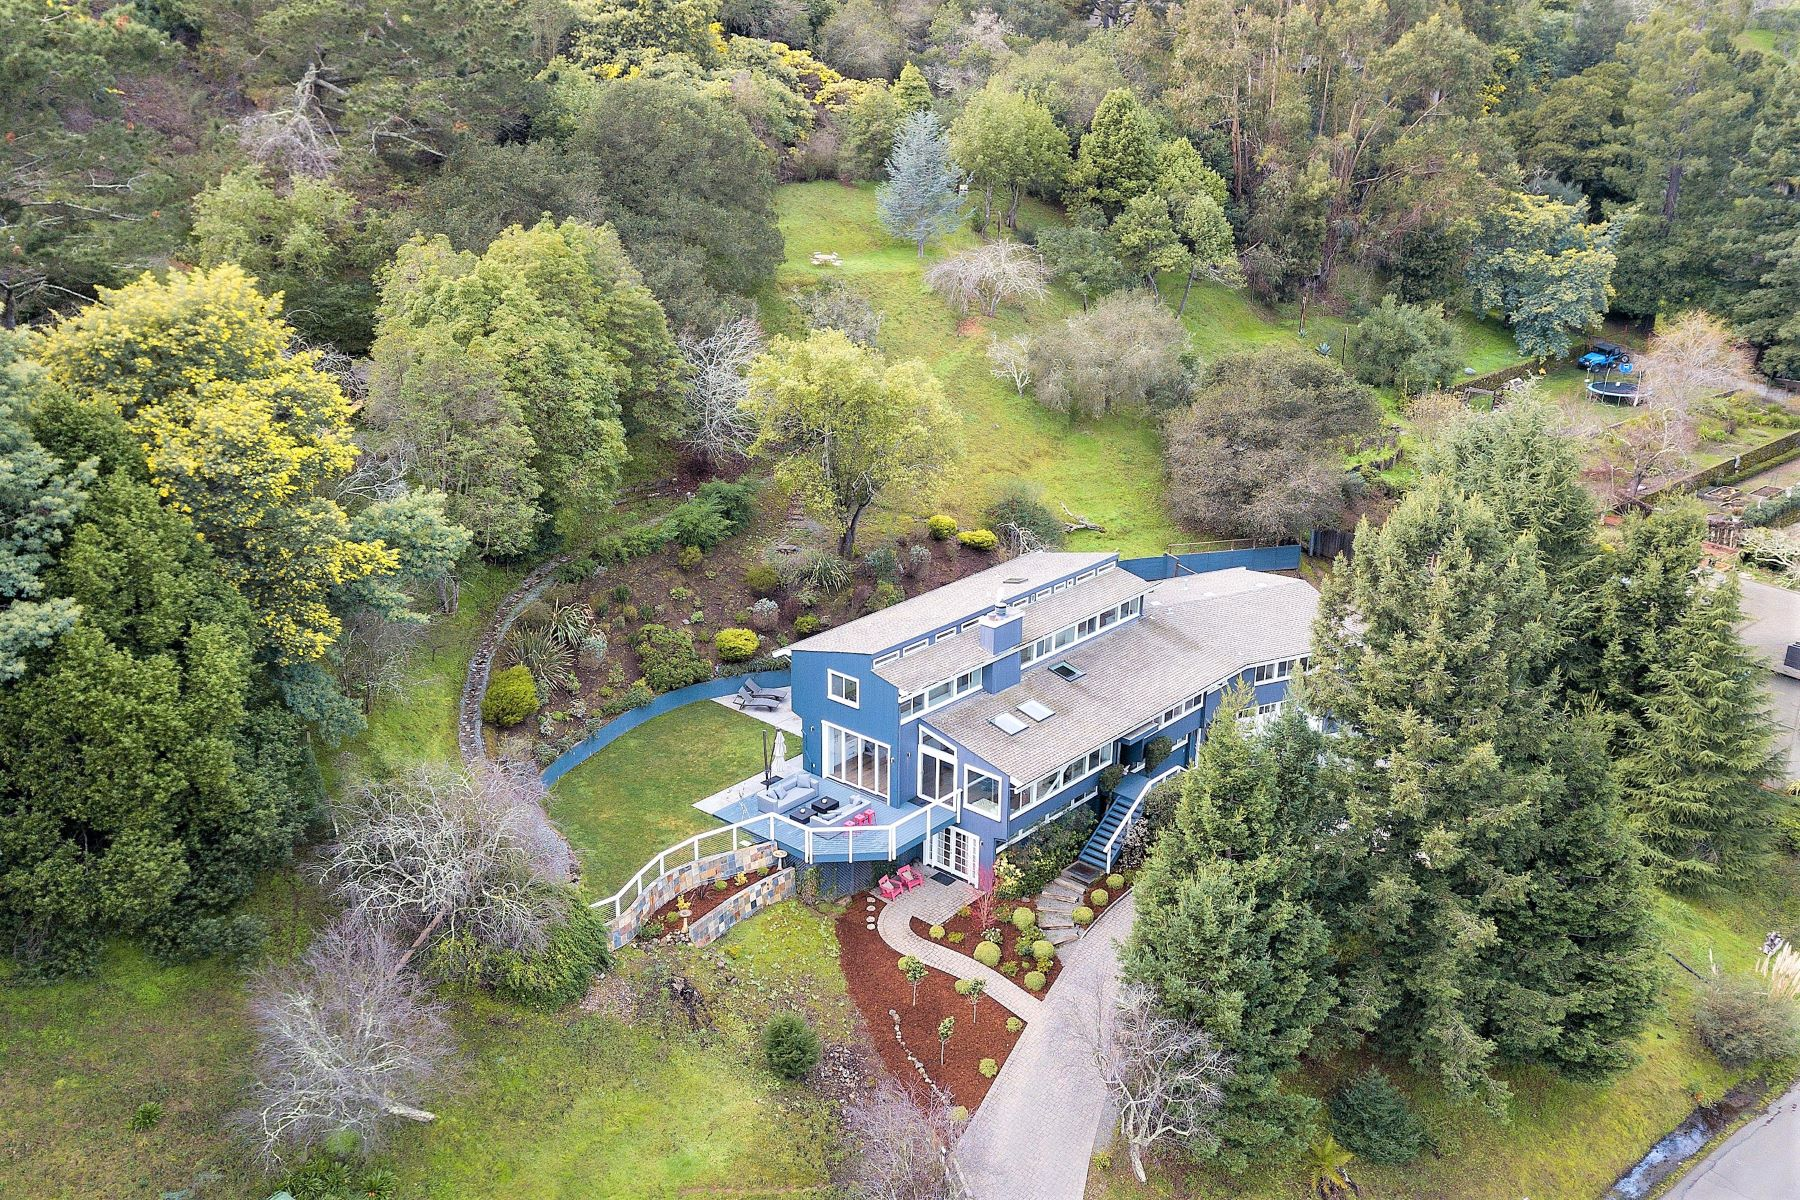 Single Family Homes for Active at Spectacular Updated Home with Views 35 Main Drive San Rafael, California 94901 United States